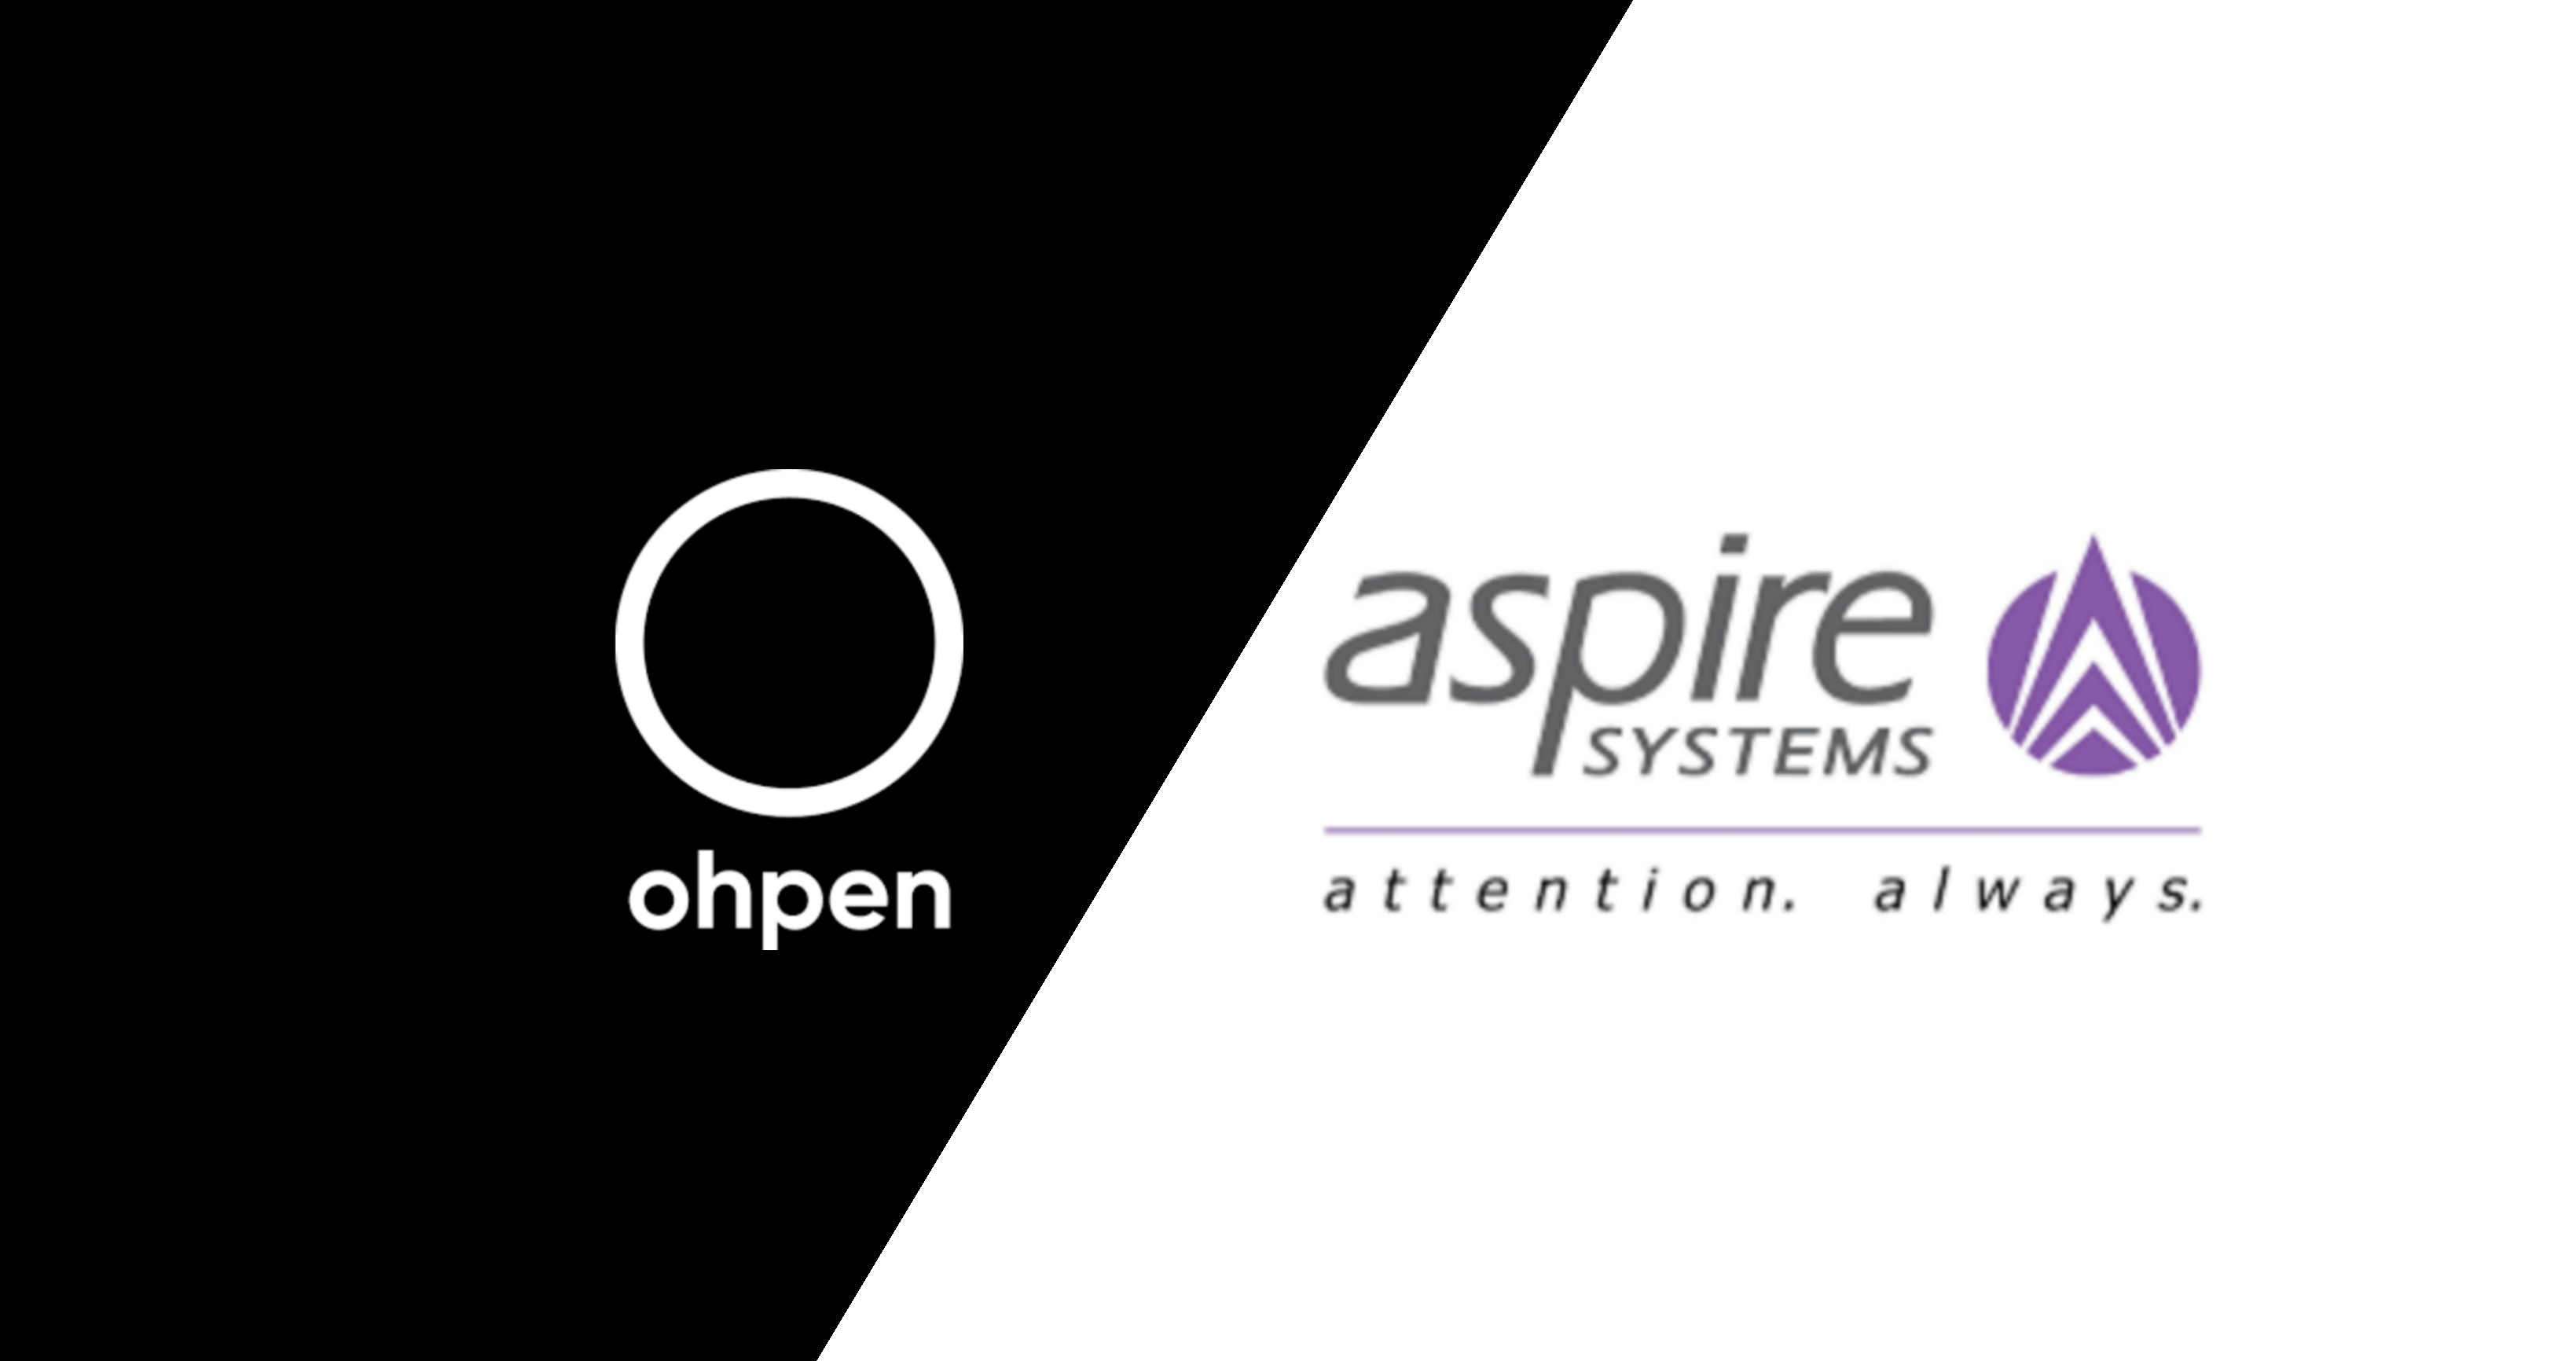 Digital Banking Provider Ohpen Announces Global Partnership with Aspire Systems